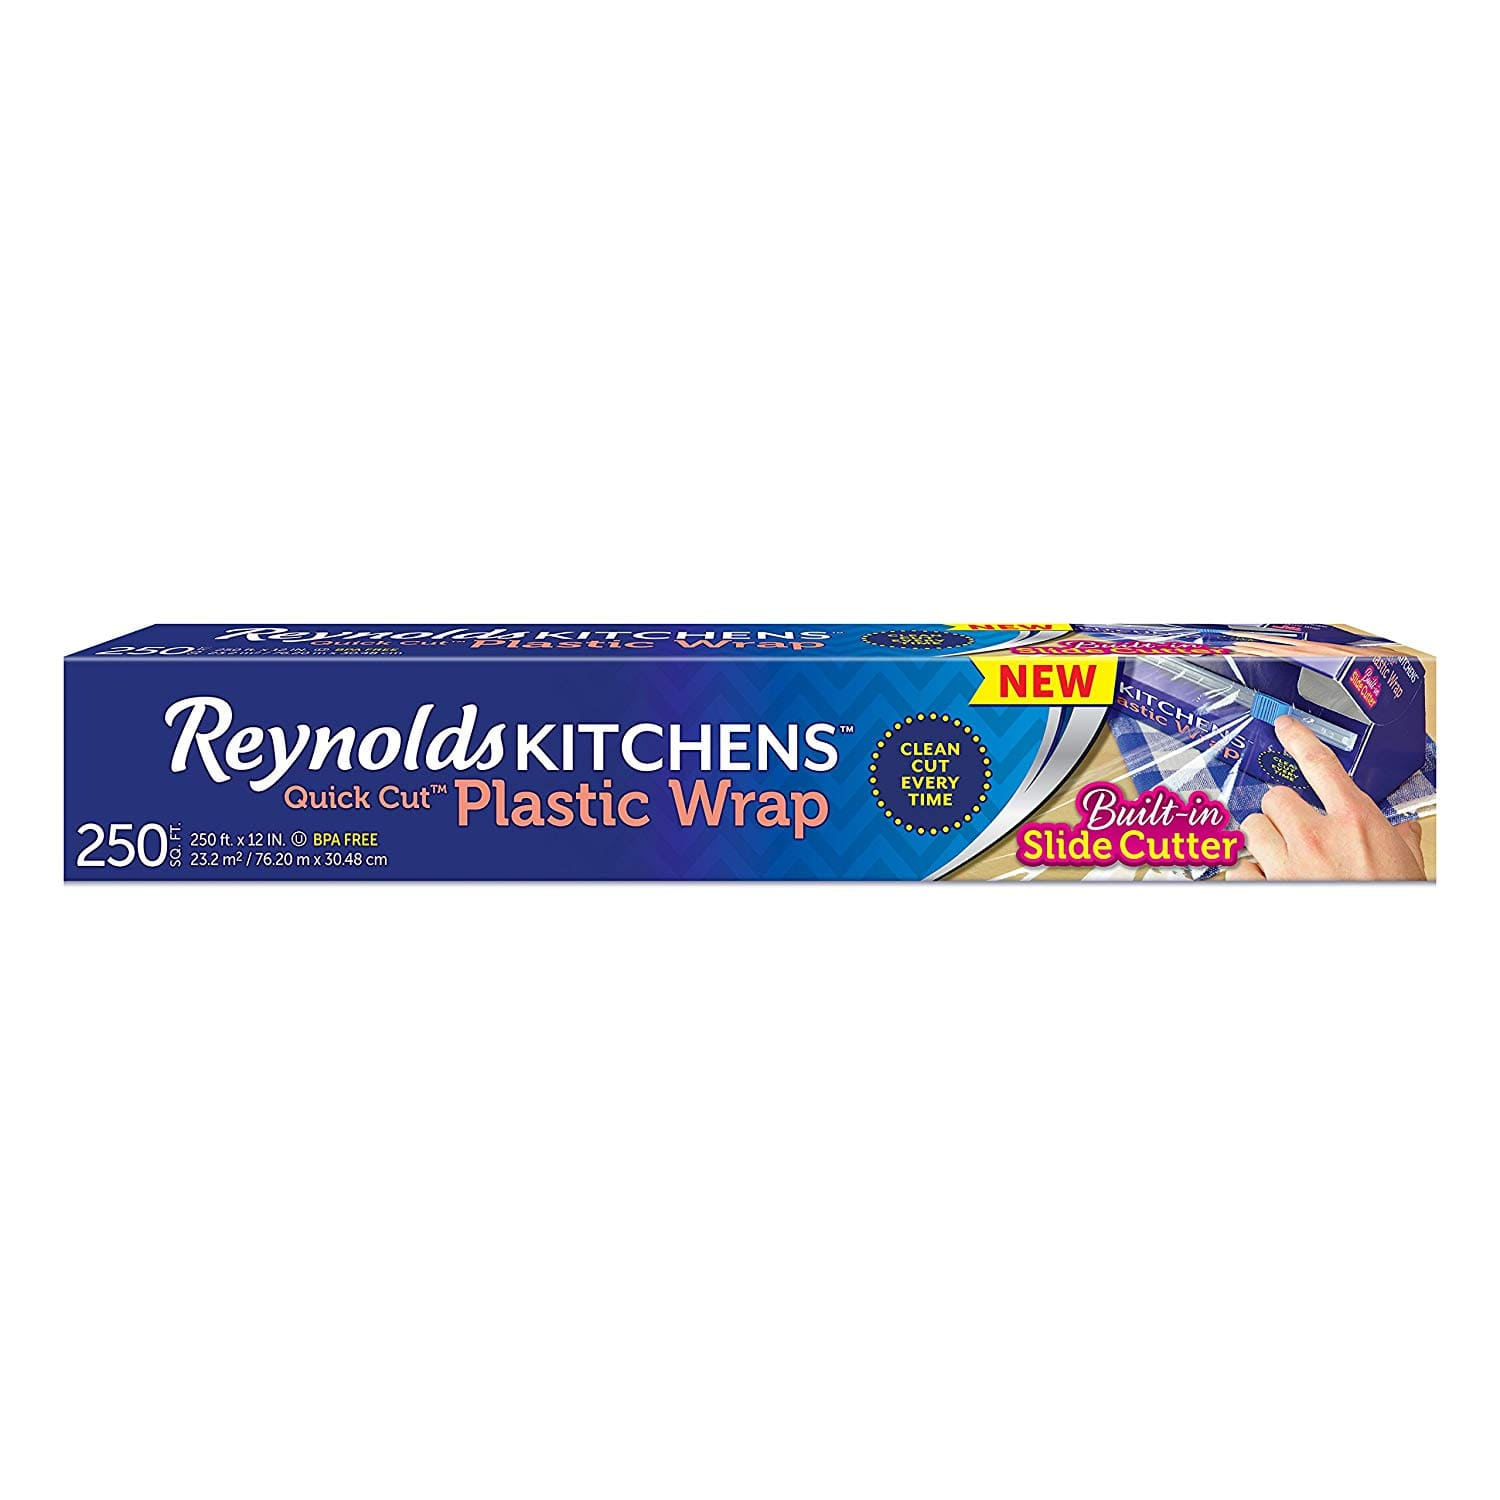 250 Sq.Ft. Reynolds Kitchens Quick Cut Plastic Wrap - $2.59 AC and Subscribe and Save at Amazon